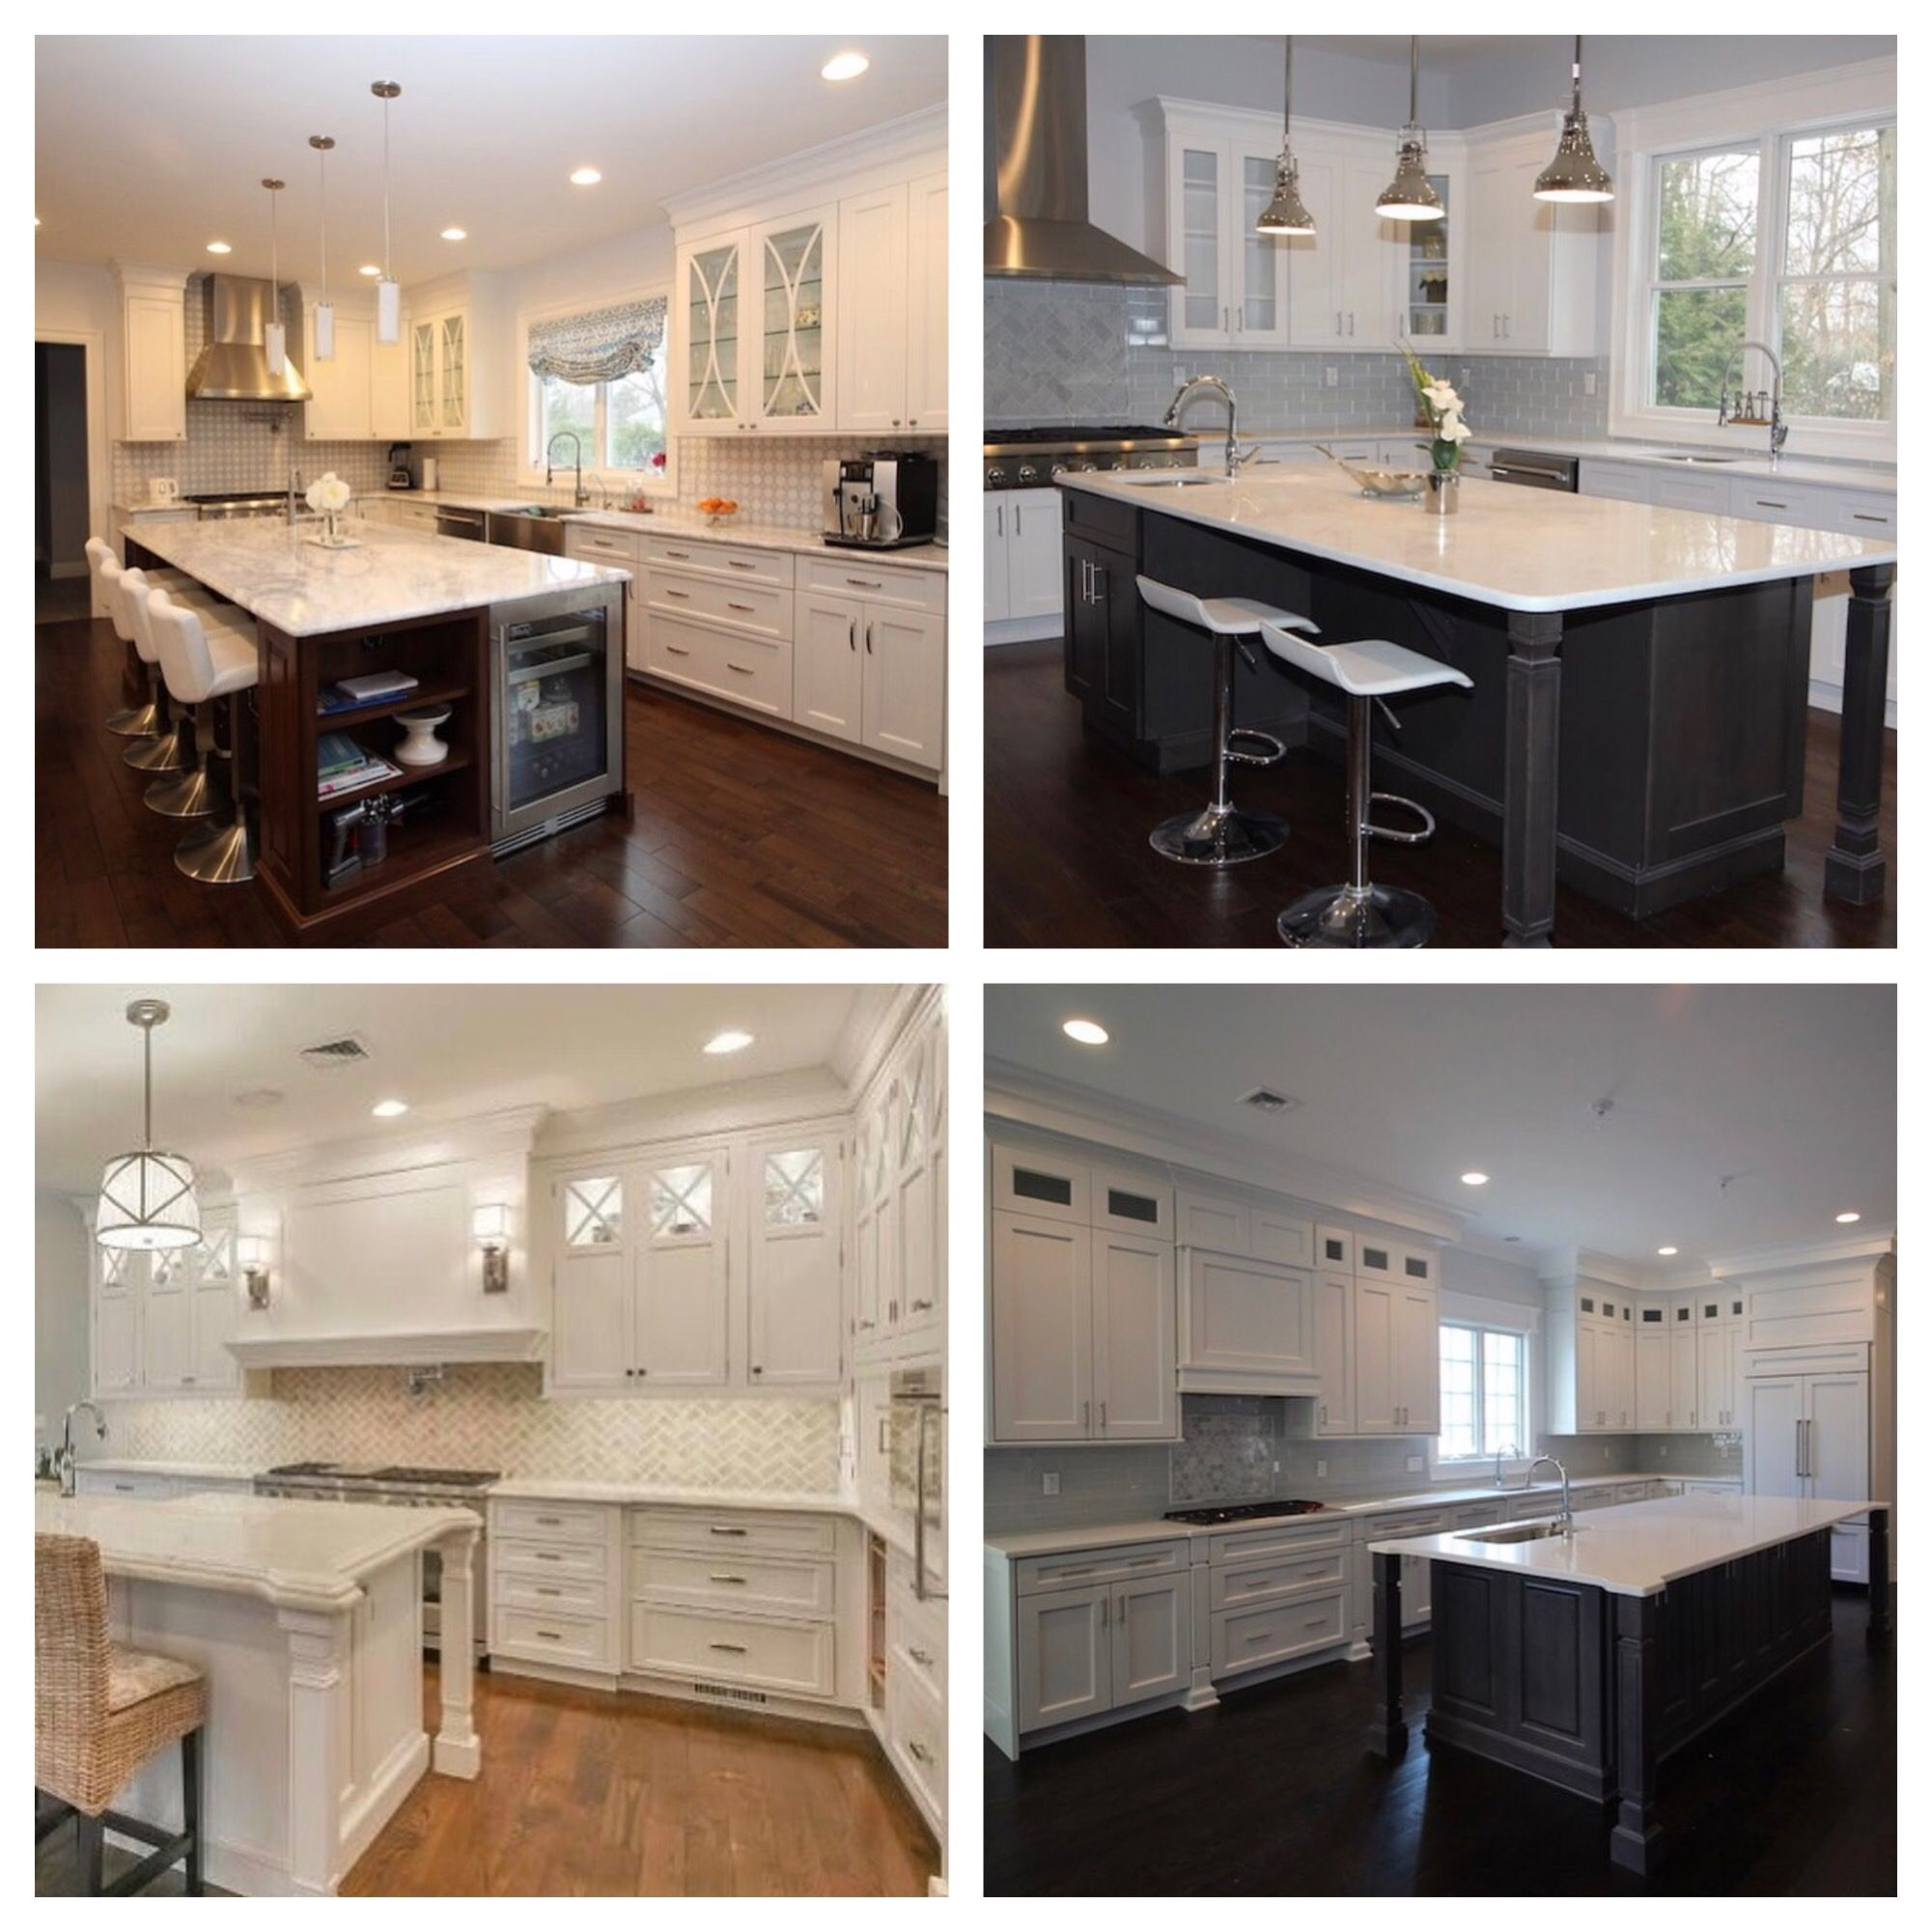 New Year New Kitchen K B Construction Home Builders Remodeling Bergen County Nj Kitchen Remodeling Ideas Images Cheap Kitchen Remodel Simple Kitchen Remodel Inexpensive Kitchen Remodel